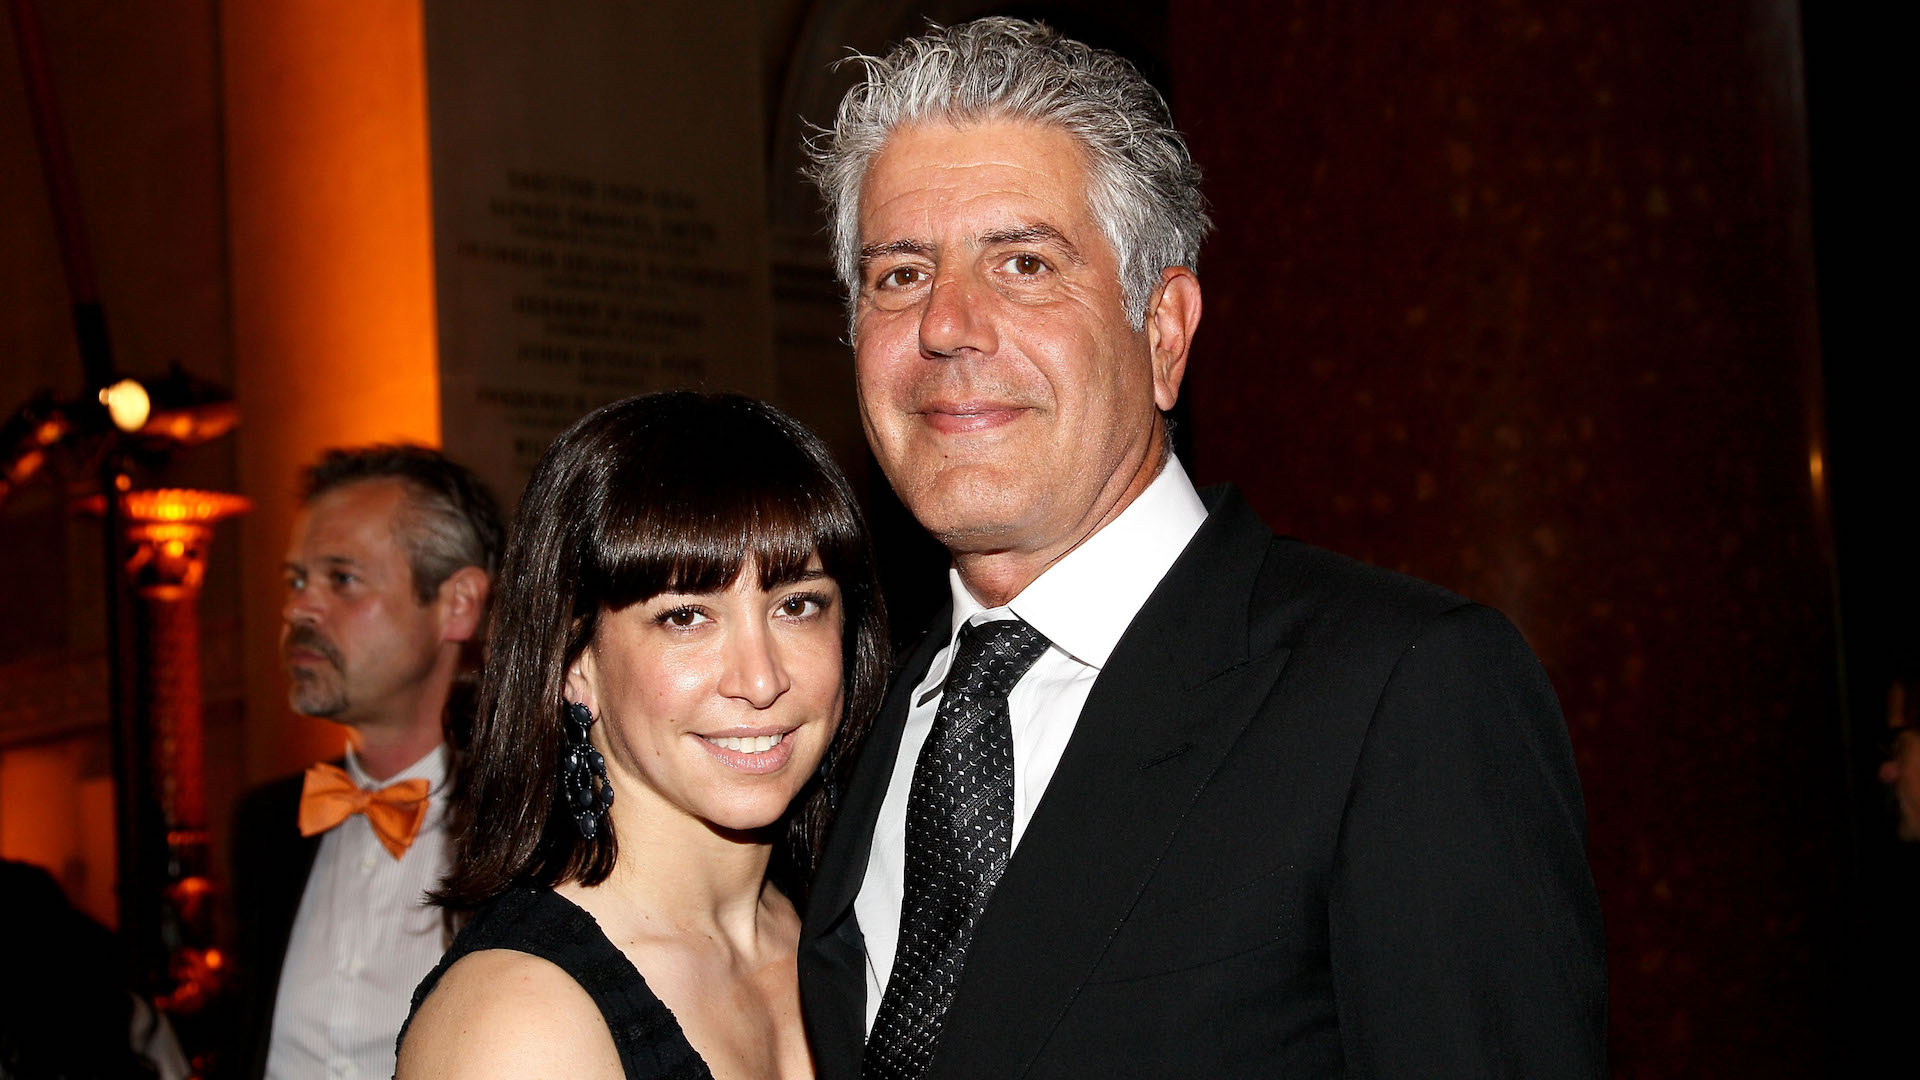 pictures-of-anthony-bourdain-wife-girl-rides-on-top-gifs-sex